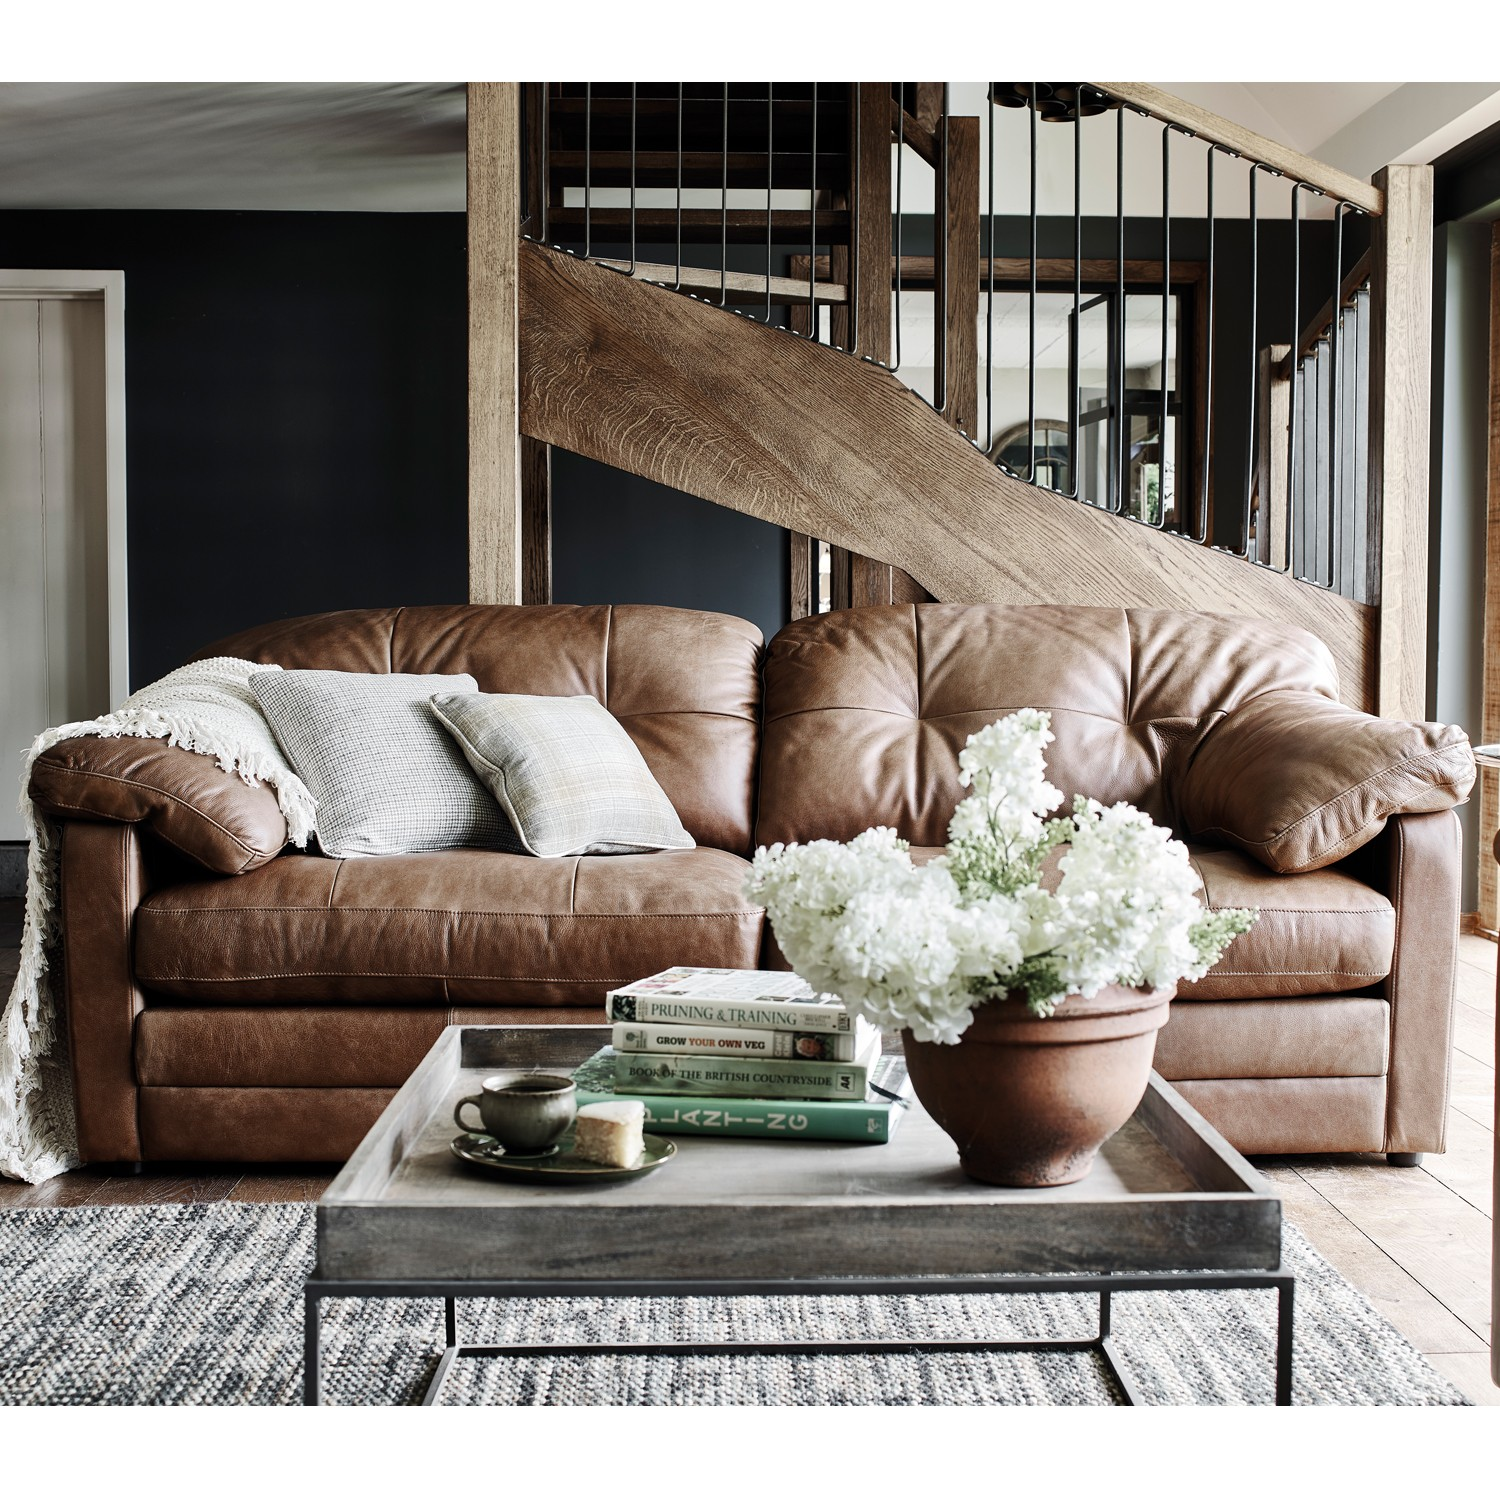 Superb Alexander James Bailey 3 Seater Leather Sofa Caraccident5 Cool Chair Designs And Ideas Caraccident5Info